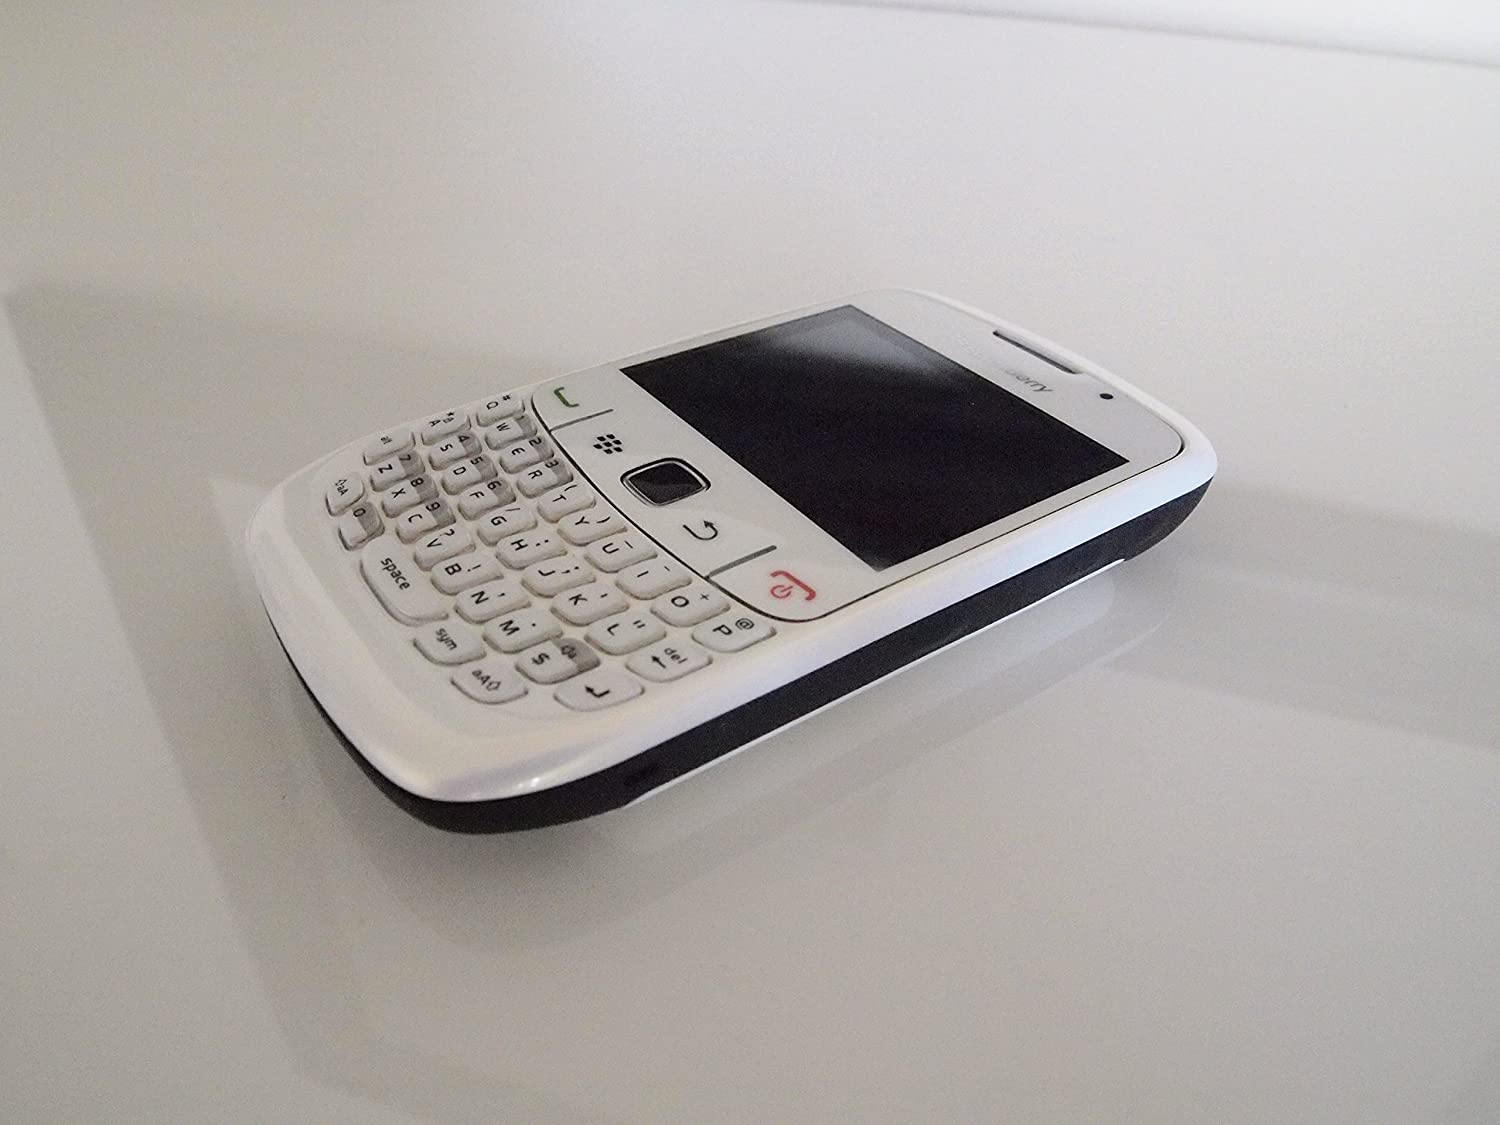 Amazon.com: RIM BlackBerry Curve 2 8530, White (Sprint) CDMA - No Contract  Required: Cell Phones & Accessories